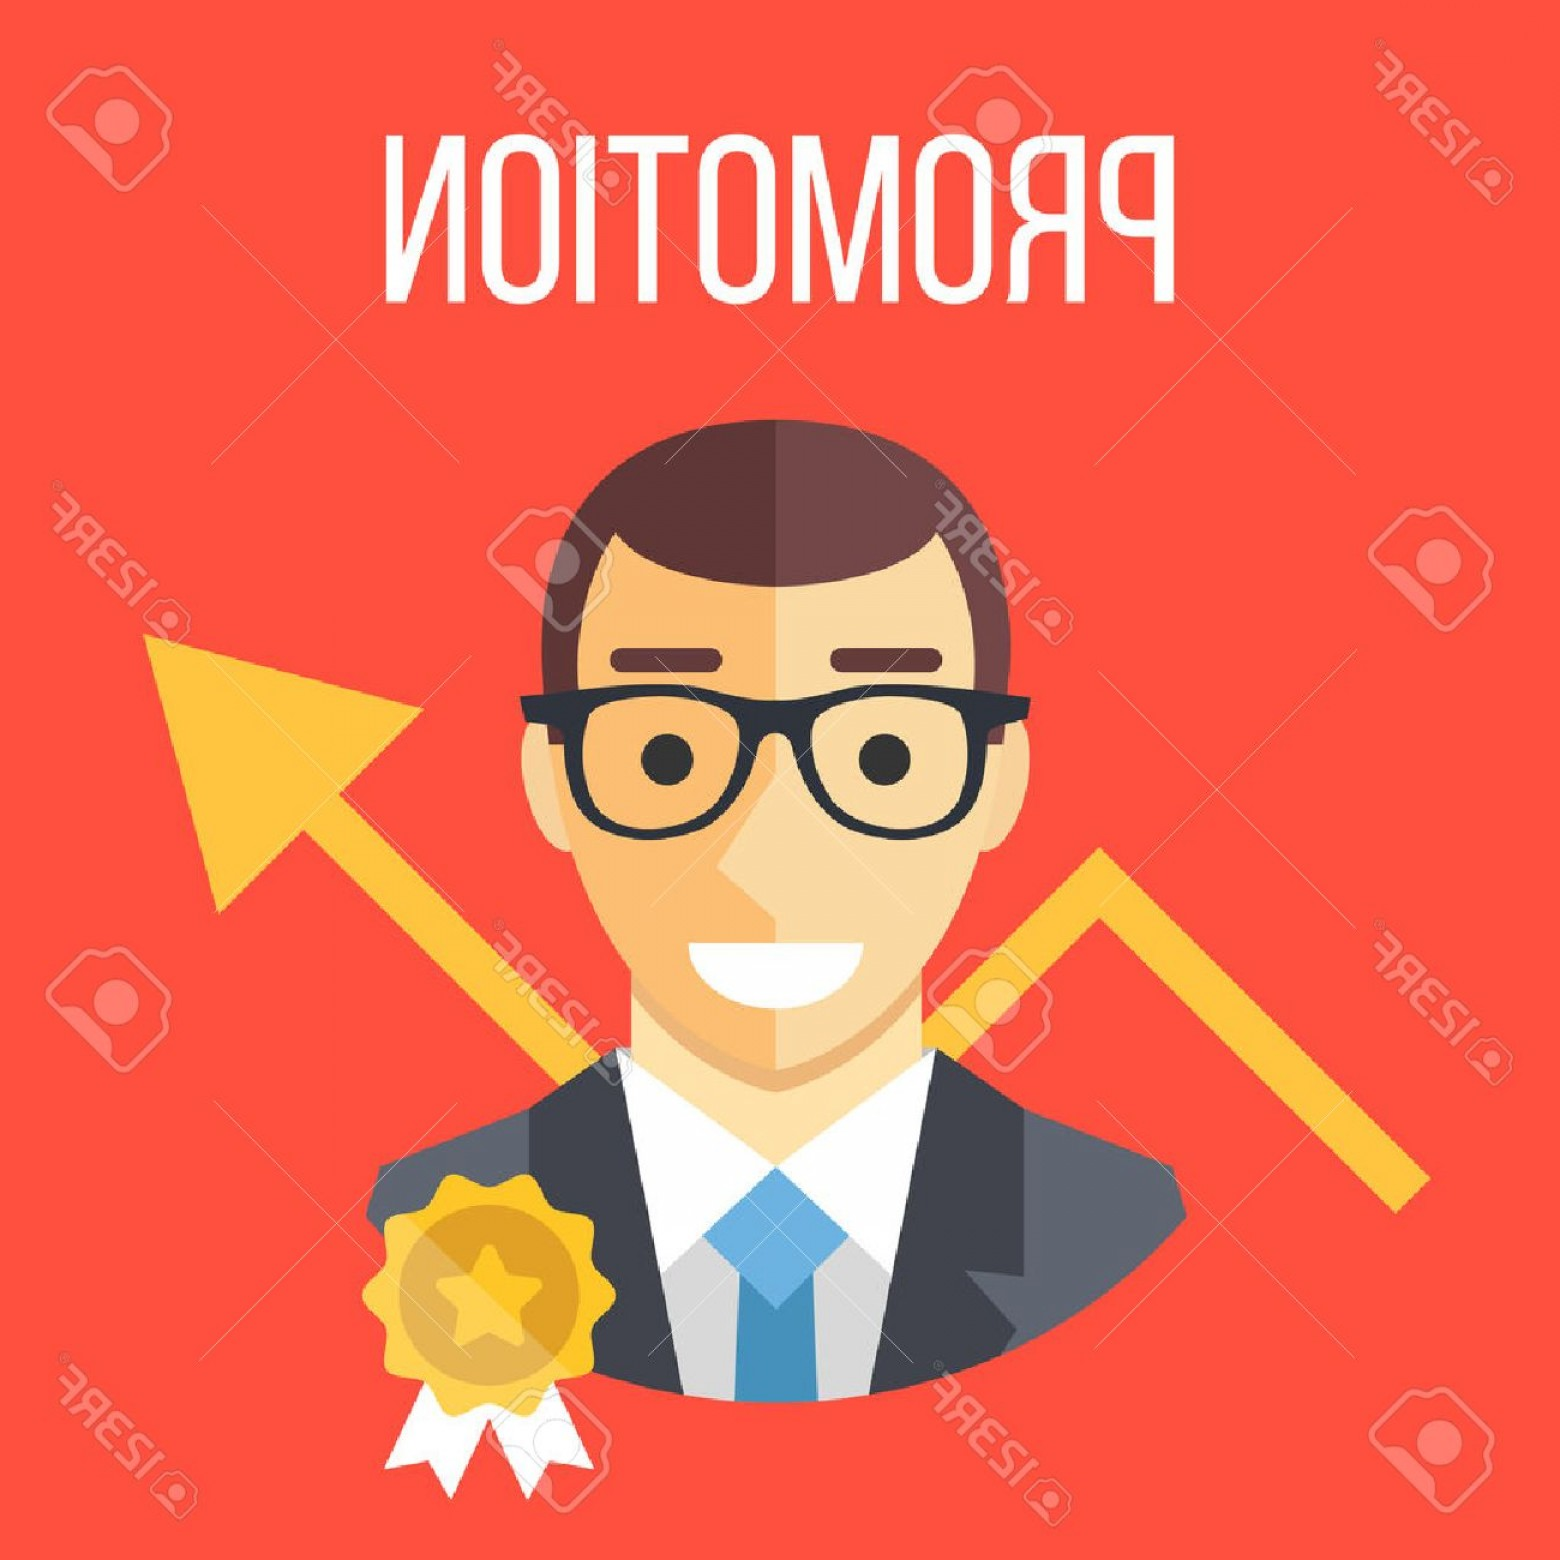 Vector Career Ladder: Photostock Vector Job Promotion Flat Illustration Career Ladder Advance In Office Job Development Promotion At Work Co